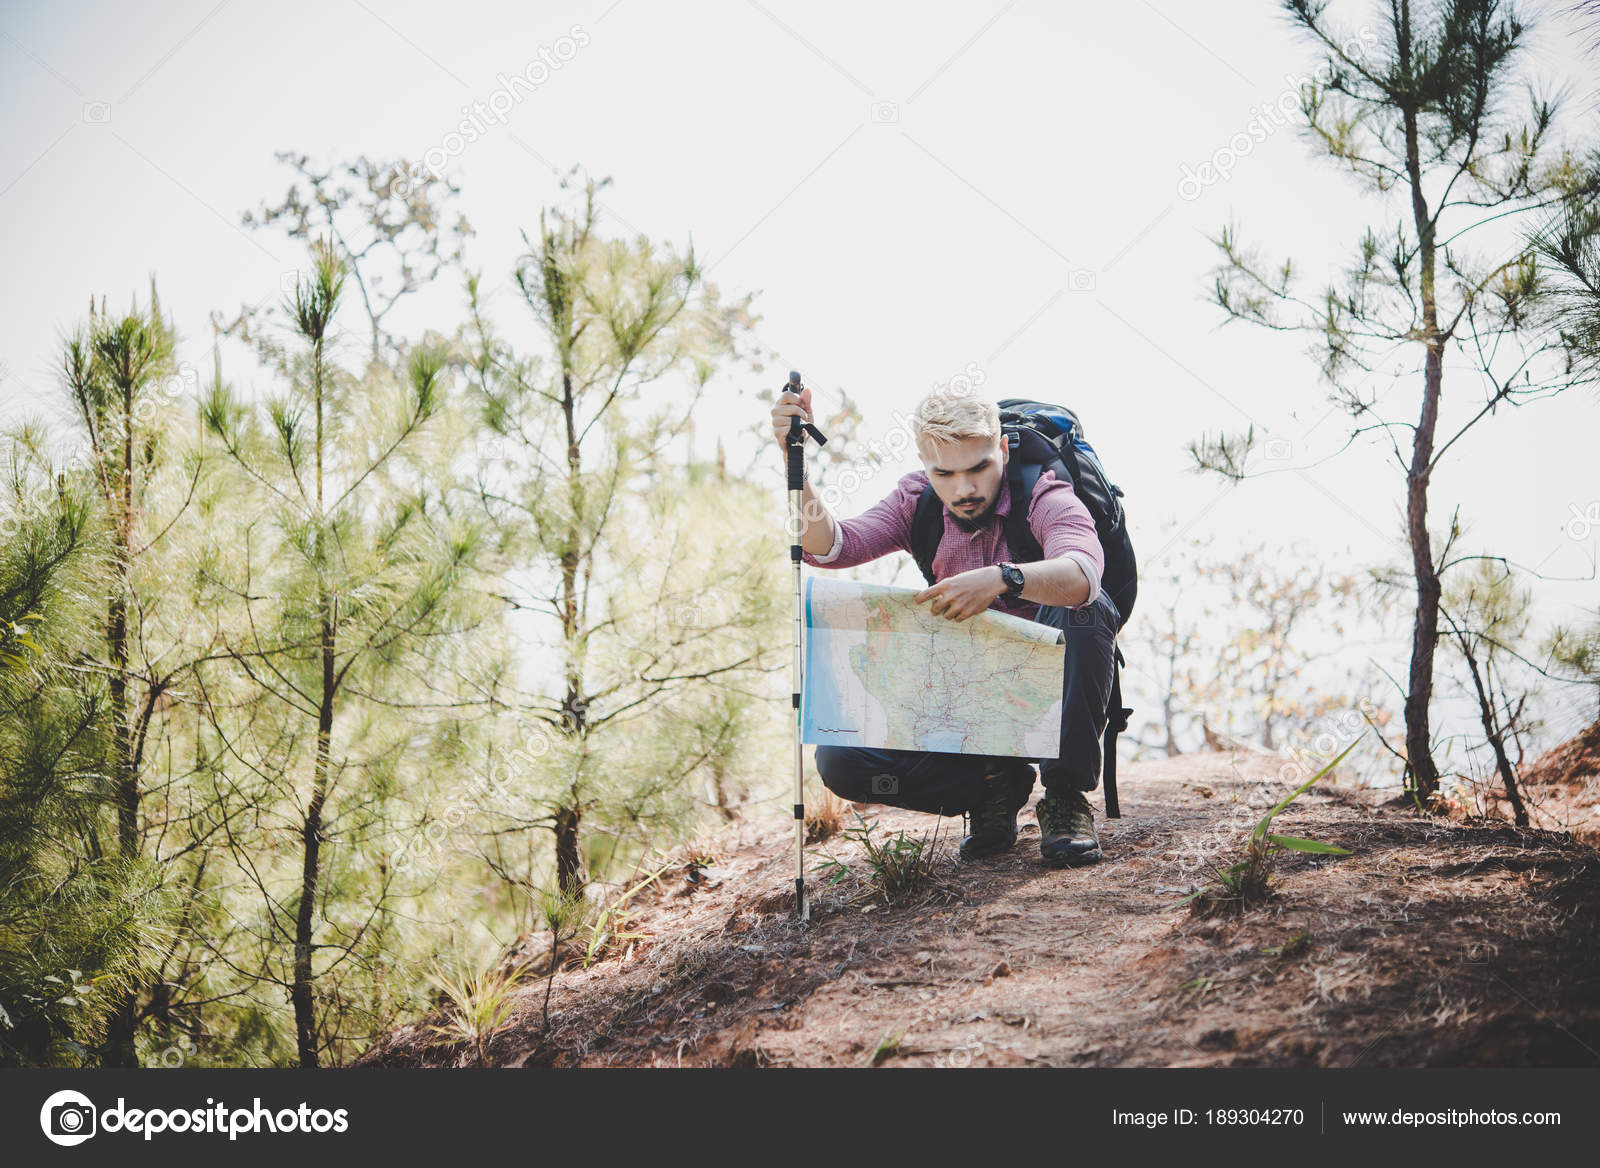 d632ff5f71b6 Hiker Map Big Traveling Backpack Traveling Mountain — Stock Photo ...